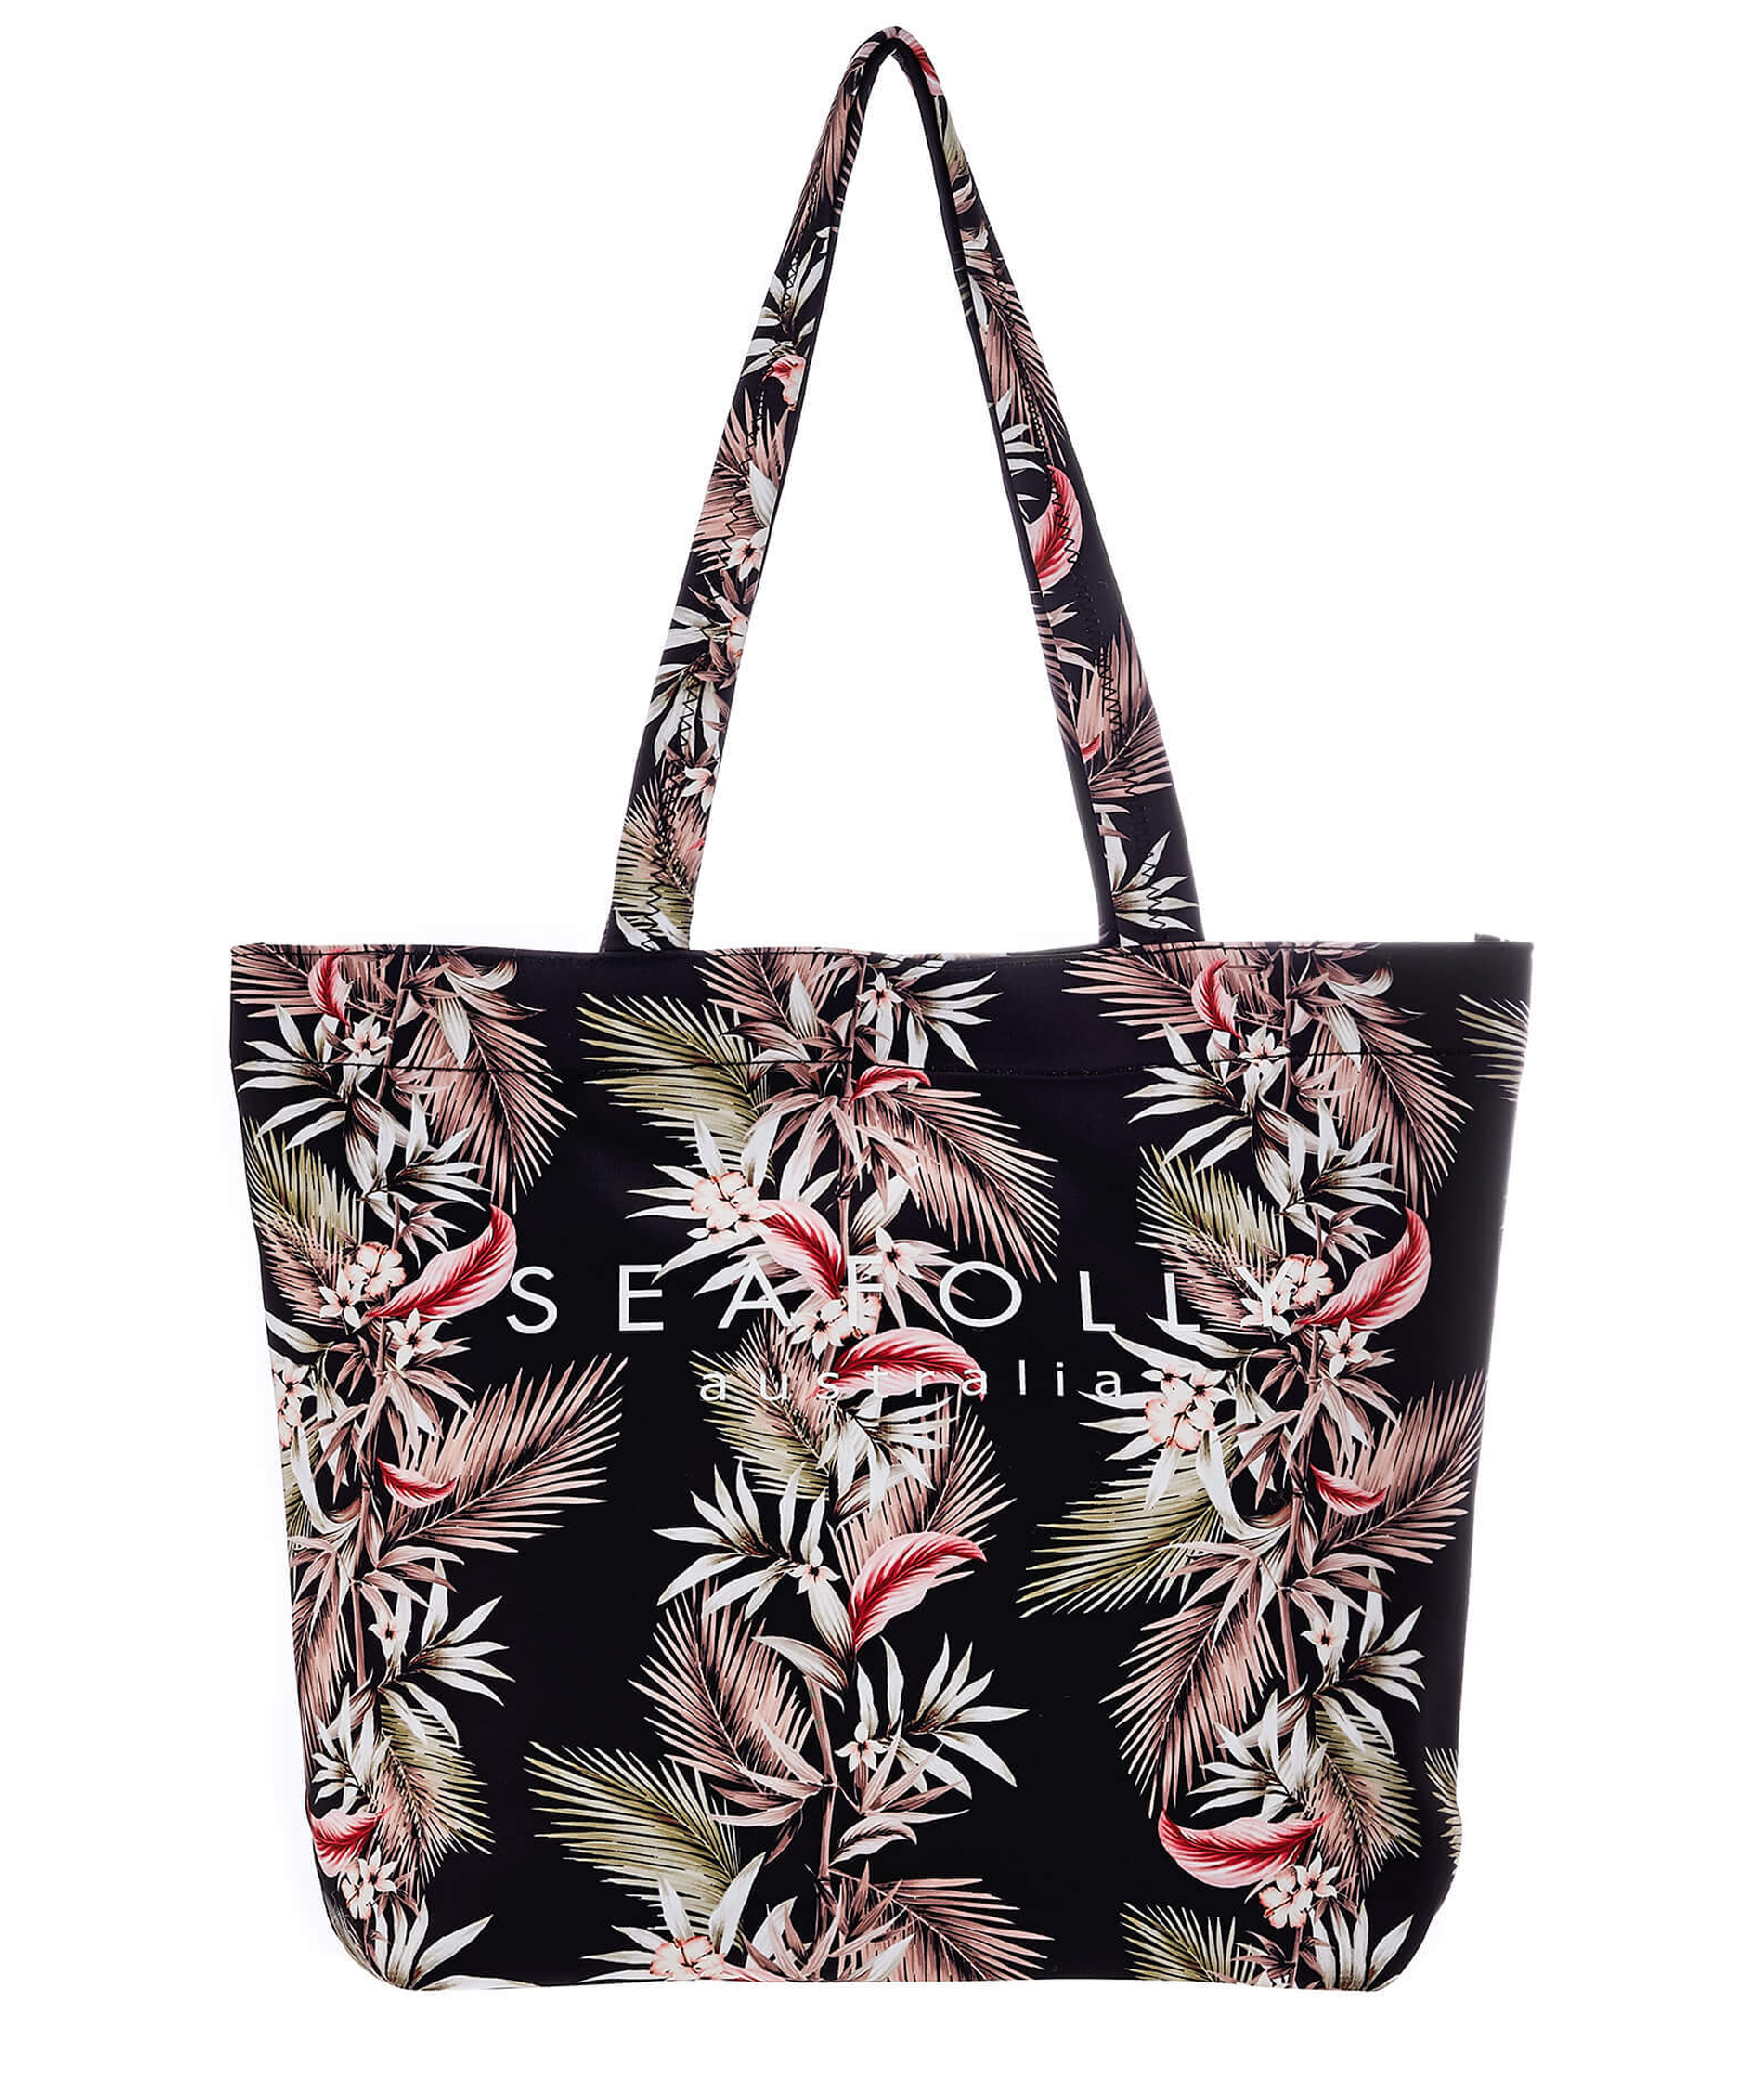 Seafolly Carried Away Ocean Alley Neoprene Tote